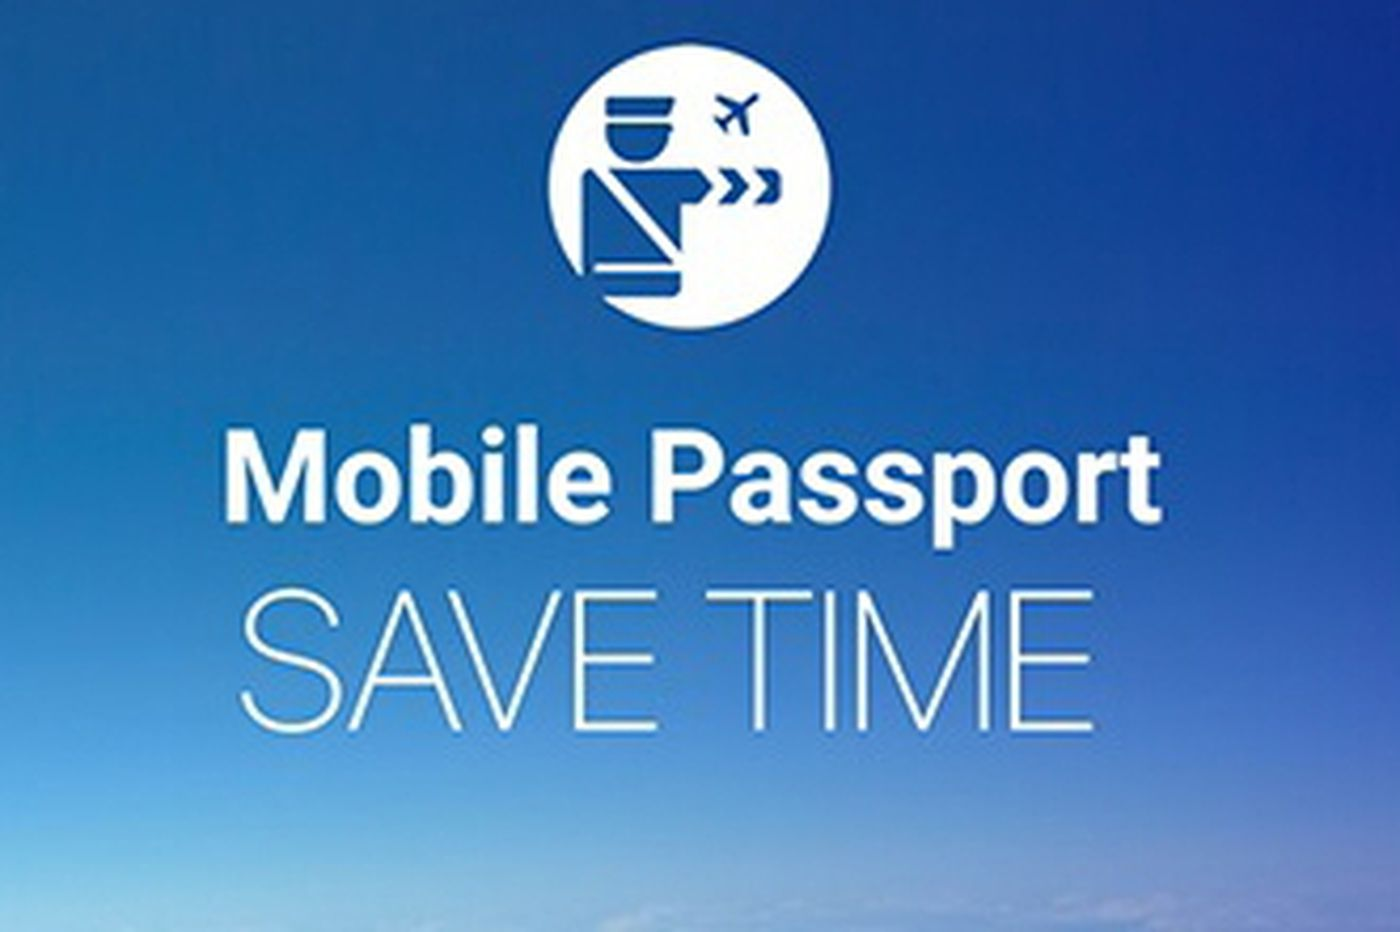 Mobile Passport is the best-kept secret in air travel